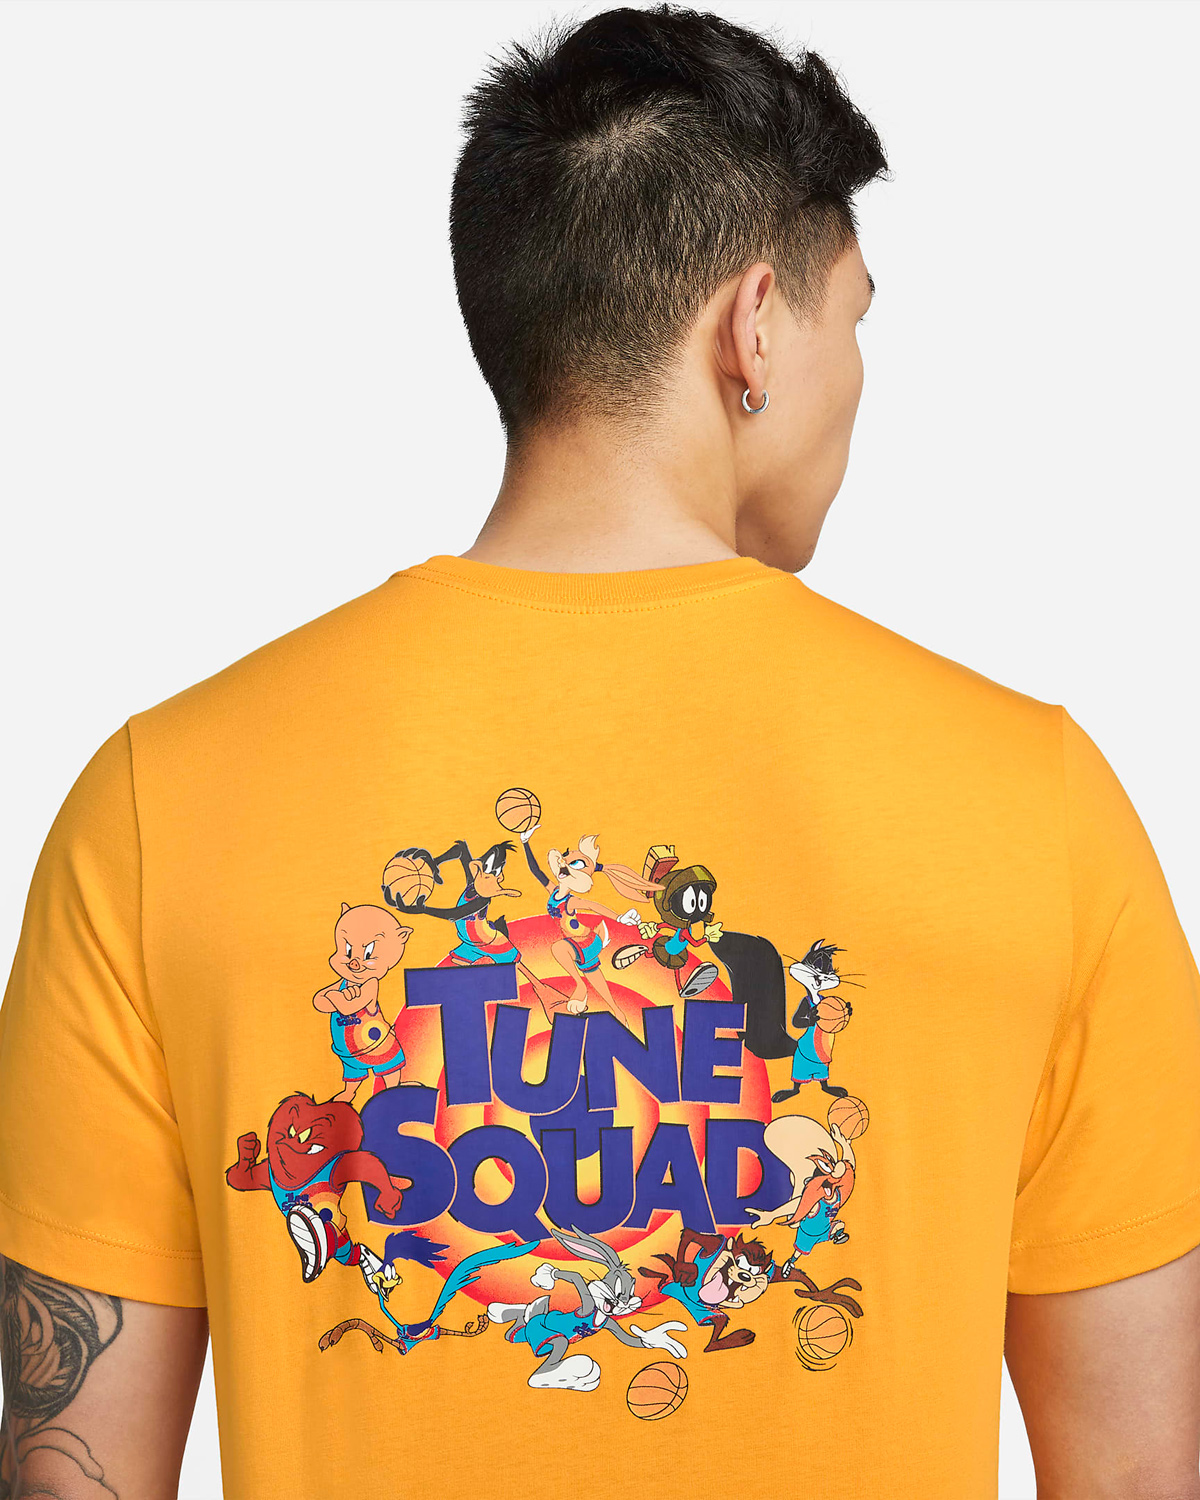 nike-space-jam-a-new-legacy-tune-squad-t-shirt-yellow-4